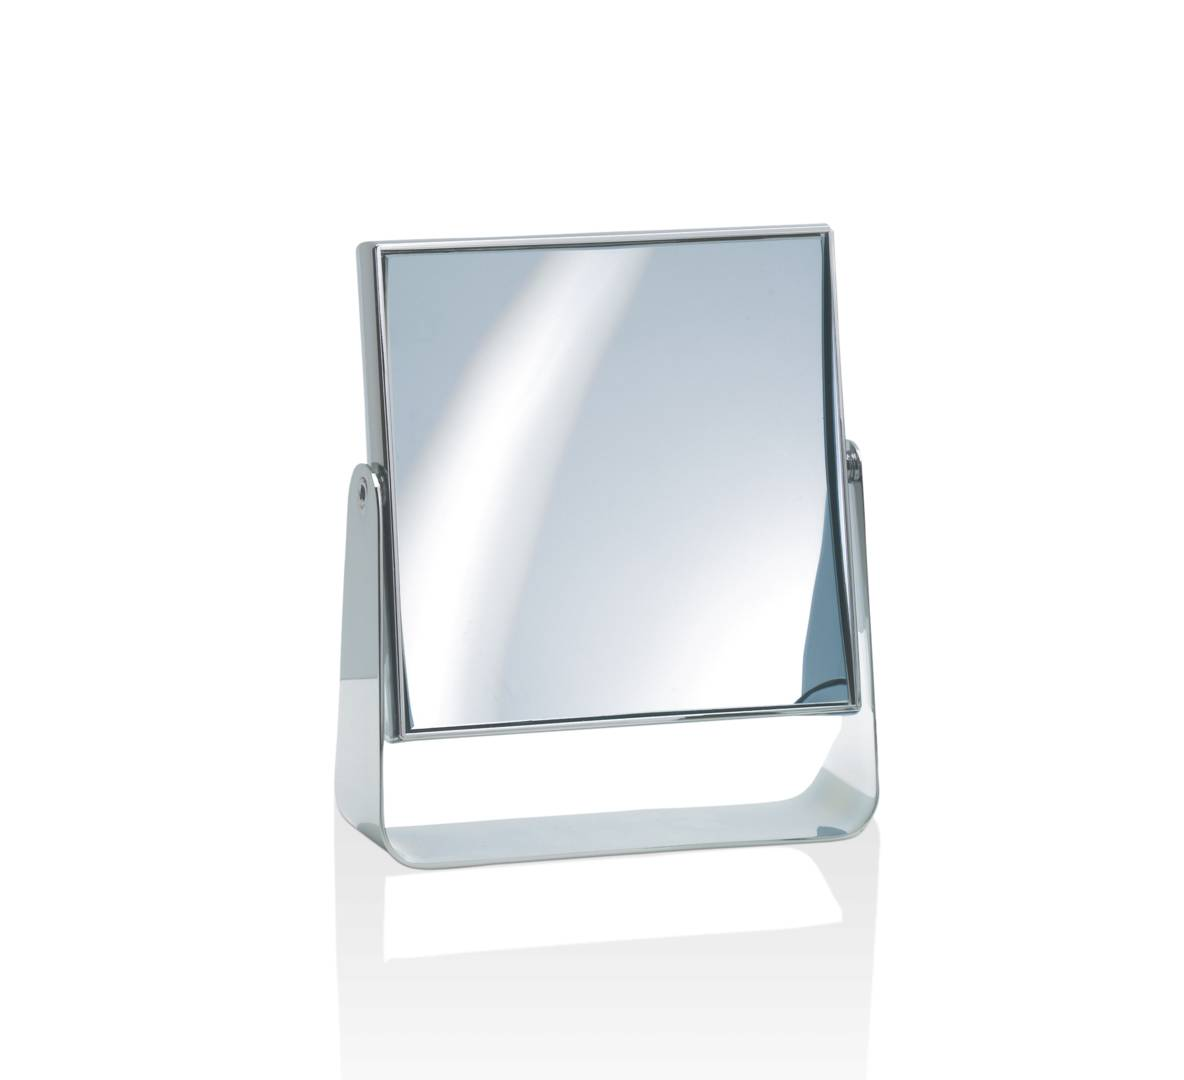 Decor Walther SPT 65/V Standing Miroir Maquillage - Chrome